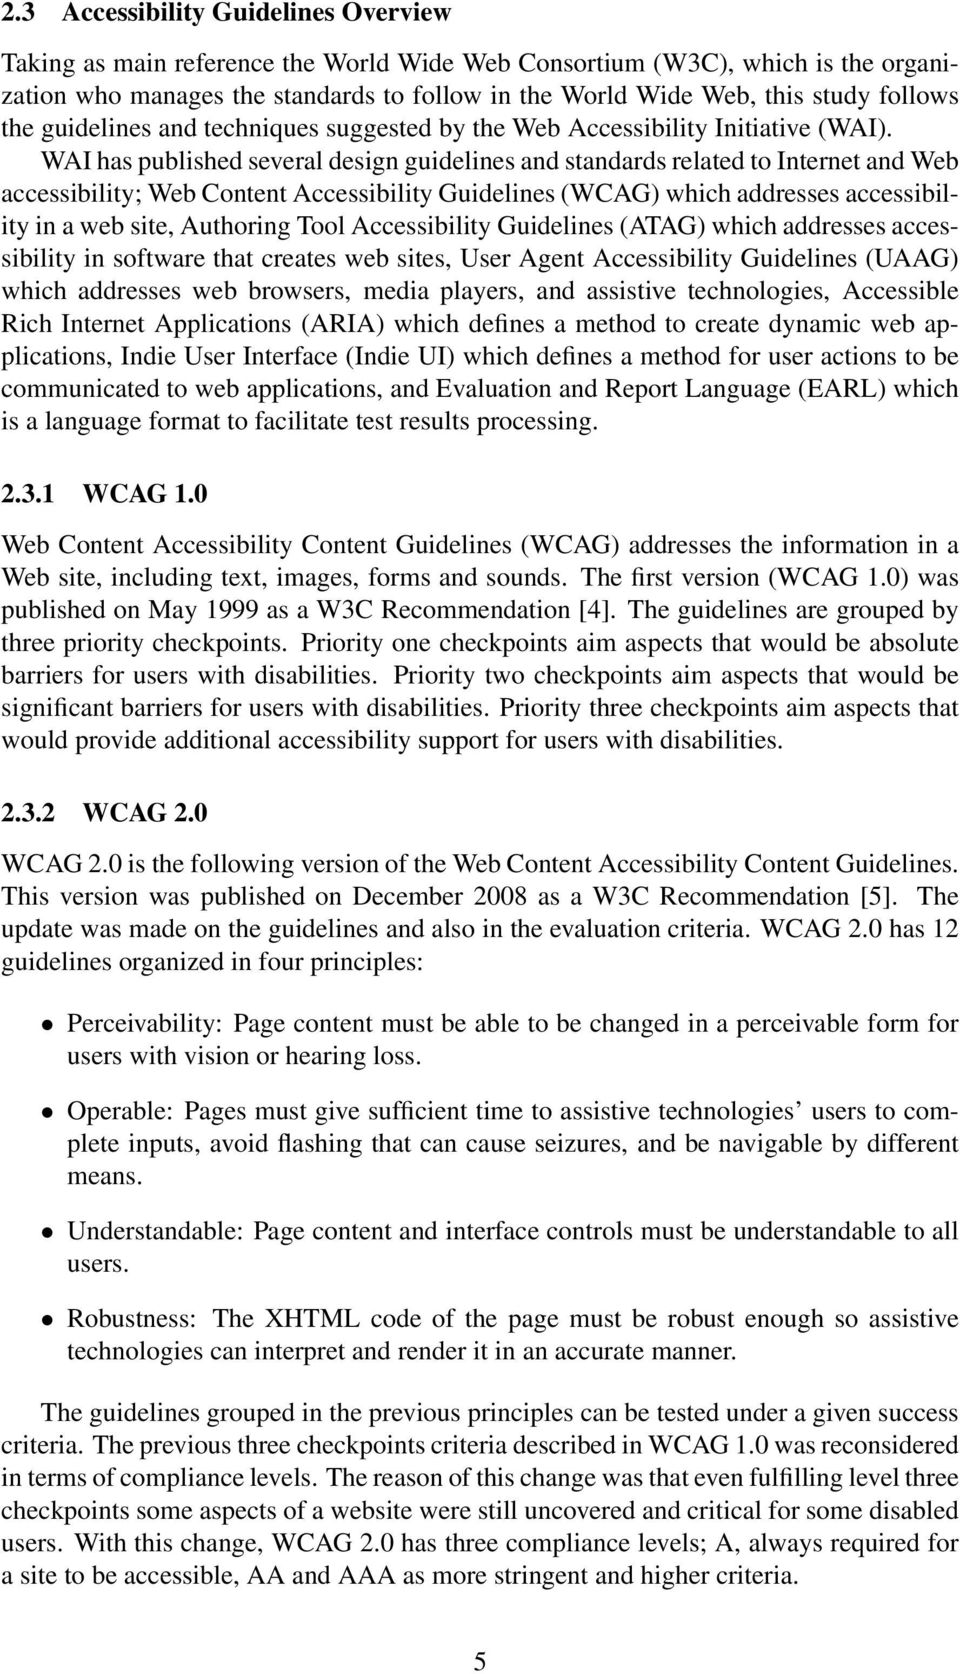 WAI has published several design guidelines and standards related to Internet and Web accessibility; Web Content Accessibility Guidelines (WCAG) which addresses accessibility in a web site, Authoring